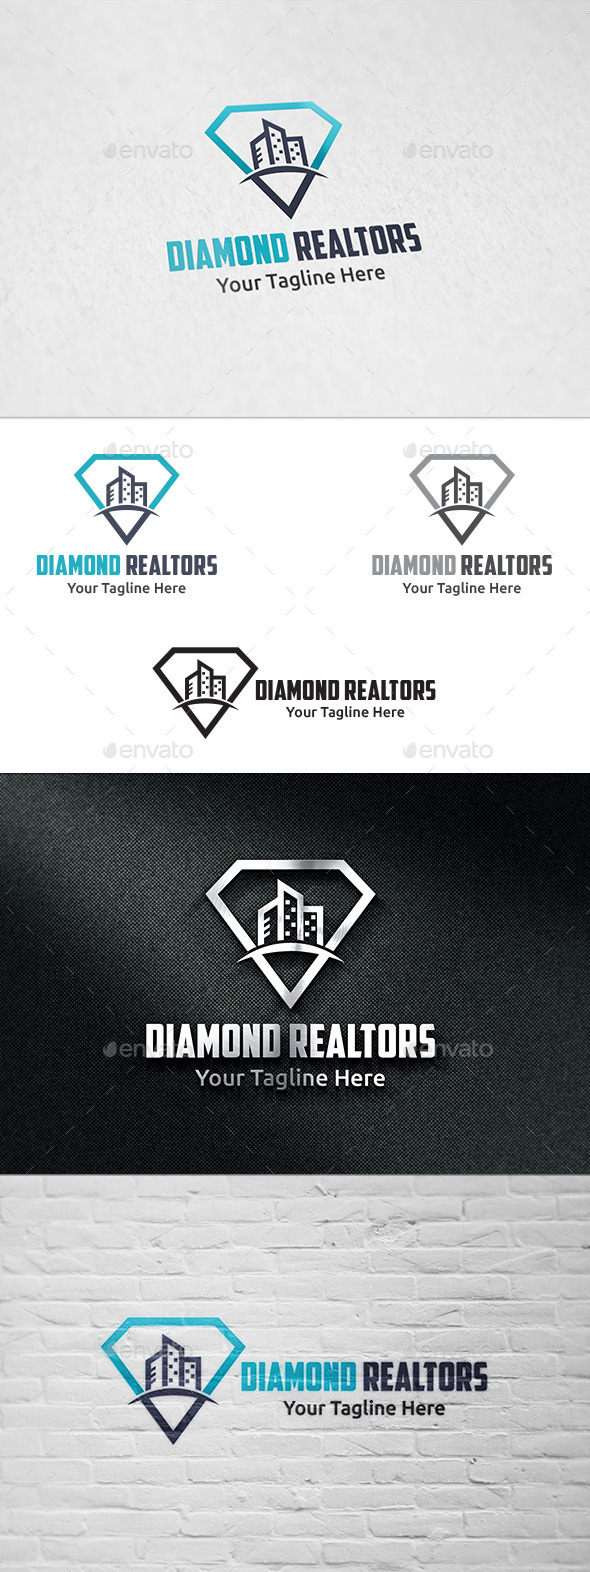 GraphicRiver Diamond Realtors Logo Template 11439593